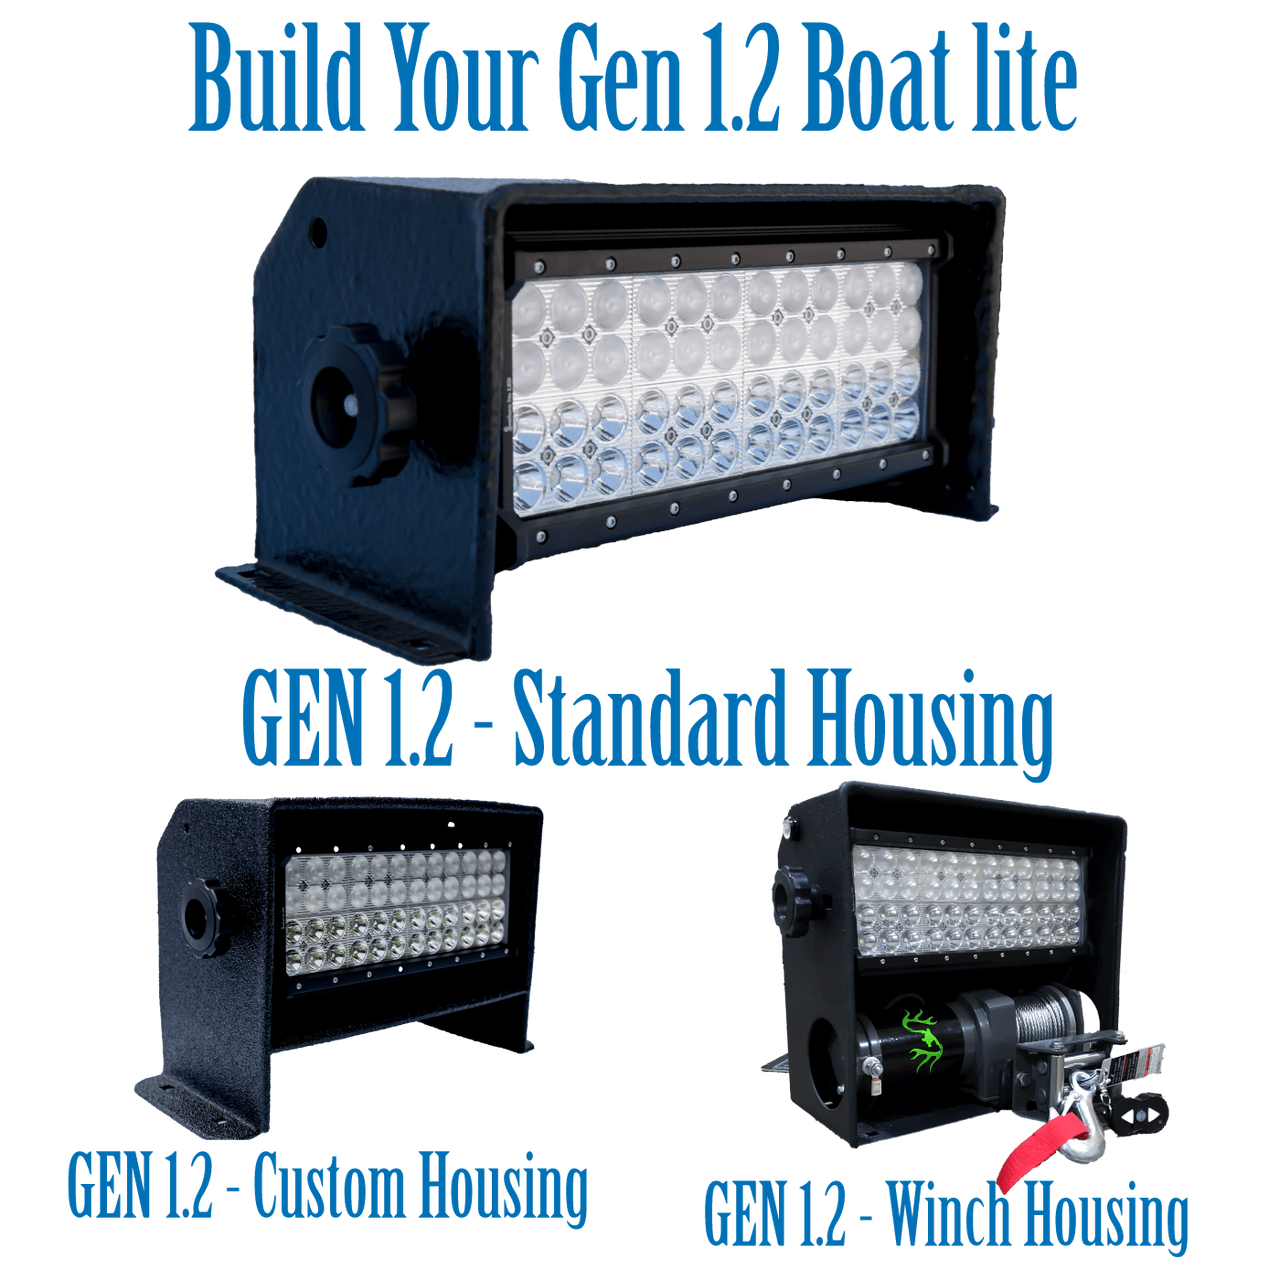 hight resolution of build you gen1 2 boat lite choose your housing style color and many